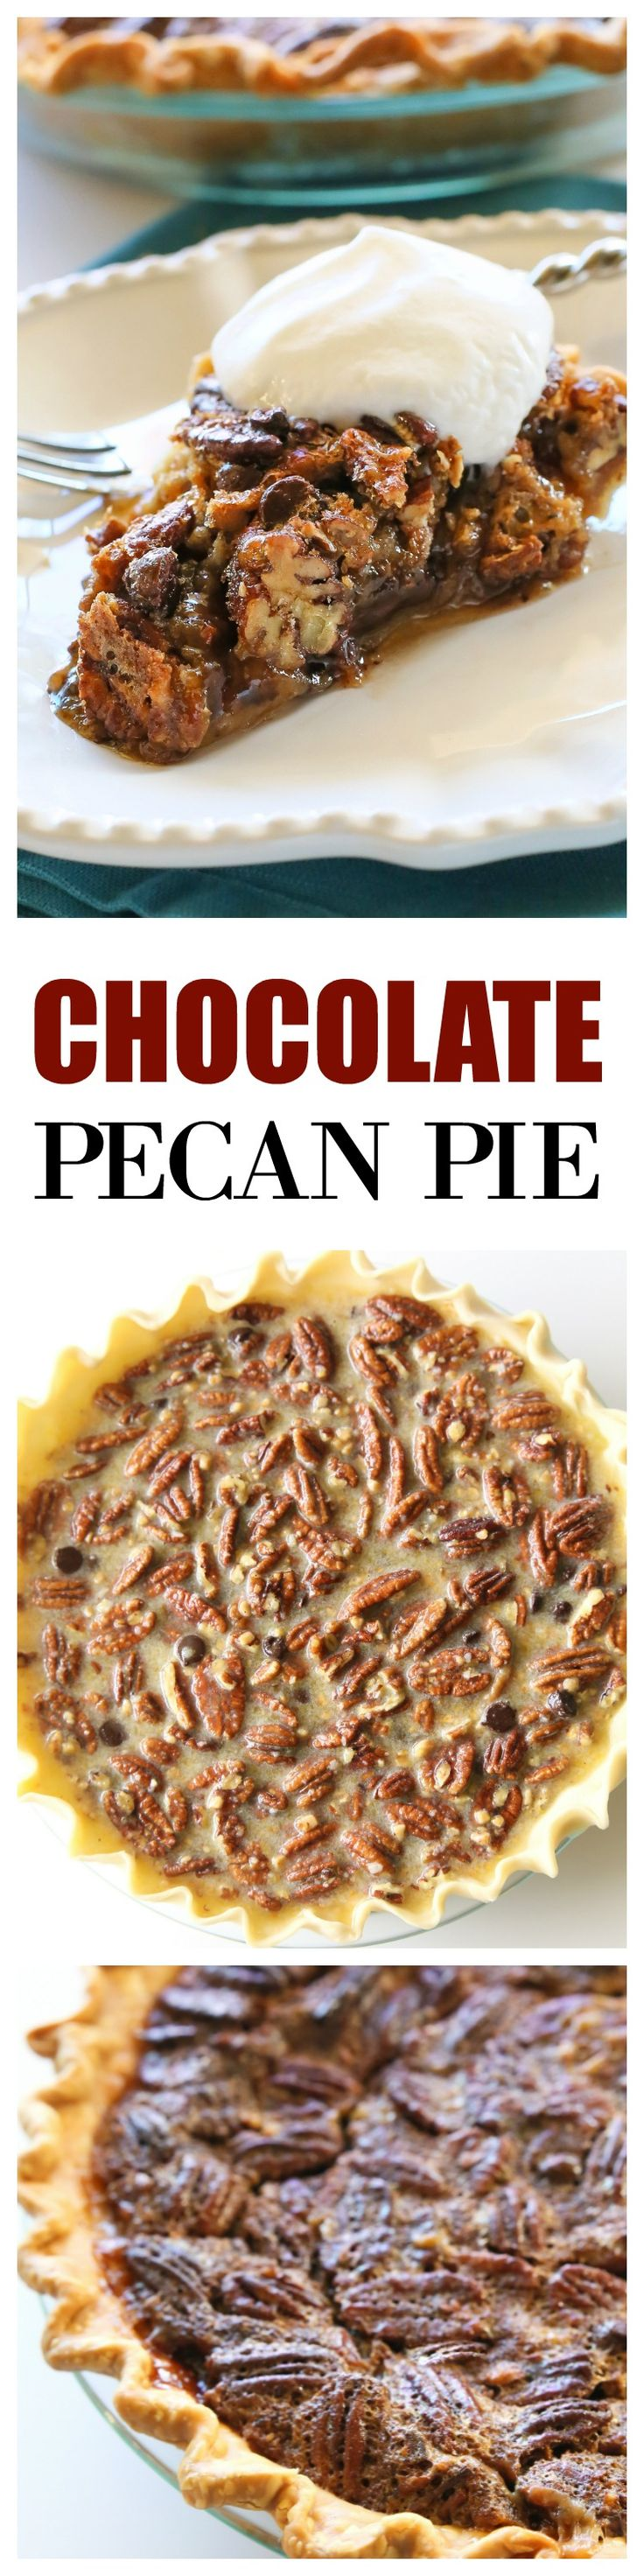 ABSOLUTELY DELICIOUS - I used walnuts instead of pecans. Even those who  don't like pecan pie loved this!